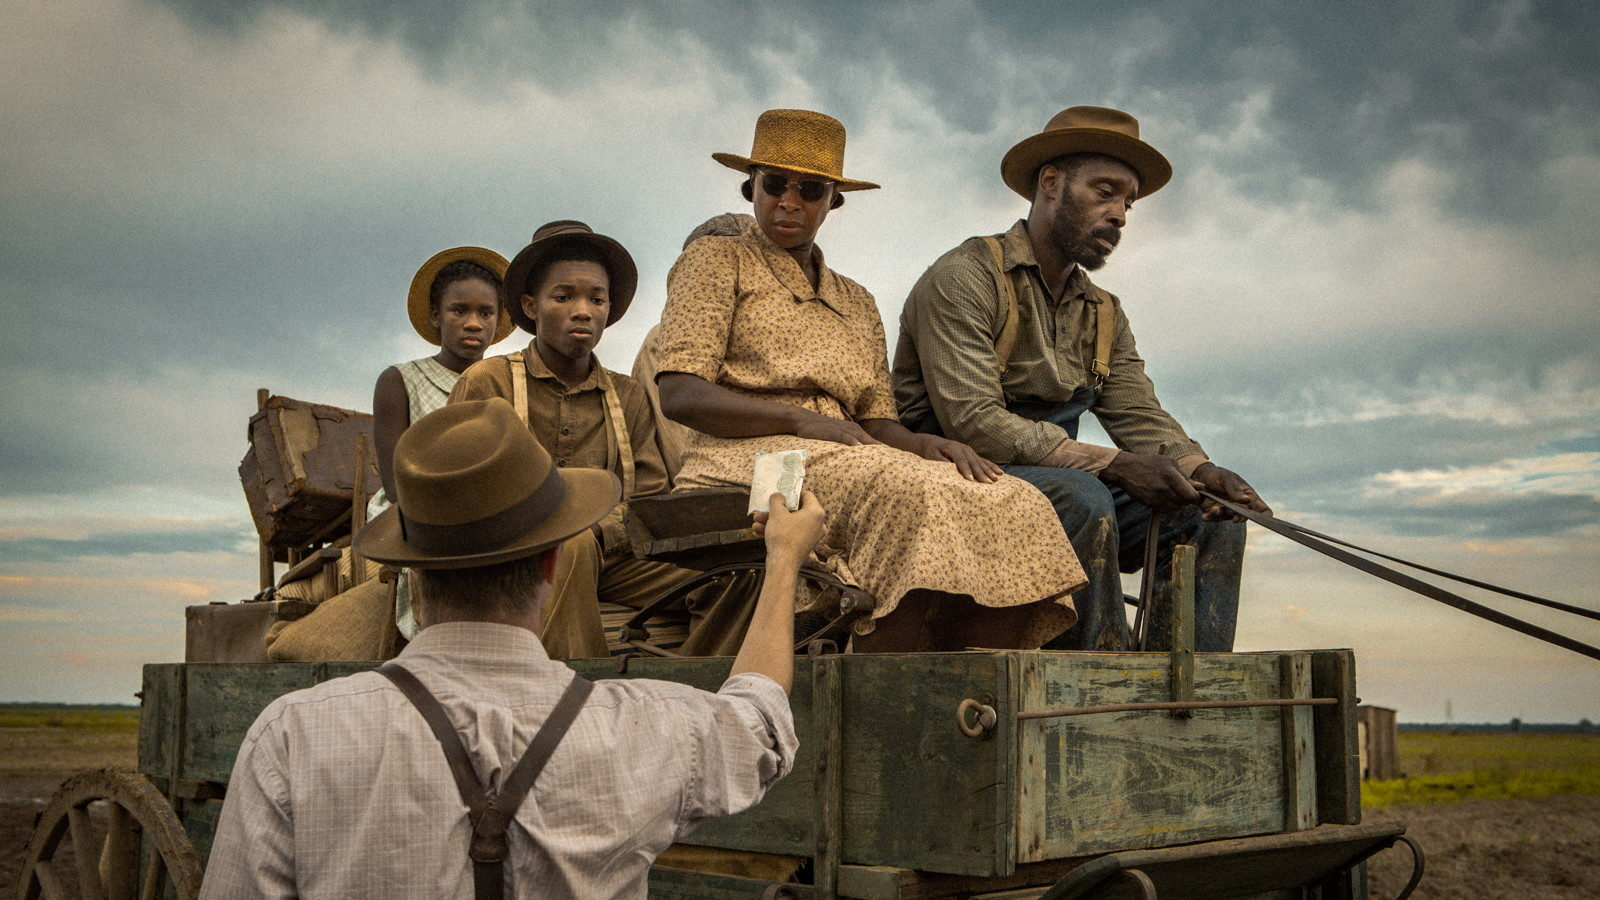 'Mudbound' is an ambitious literary adaptation that mostly succeeds